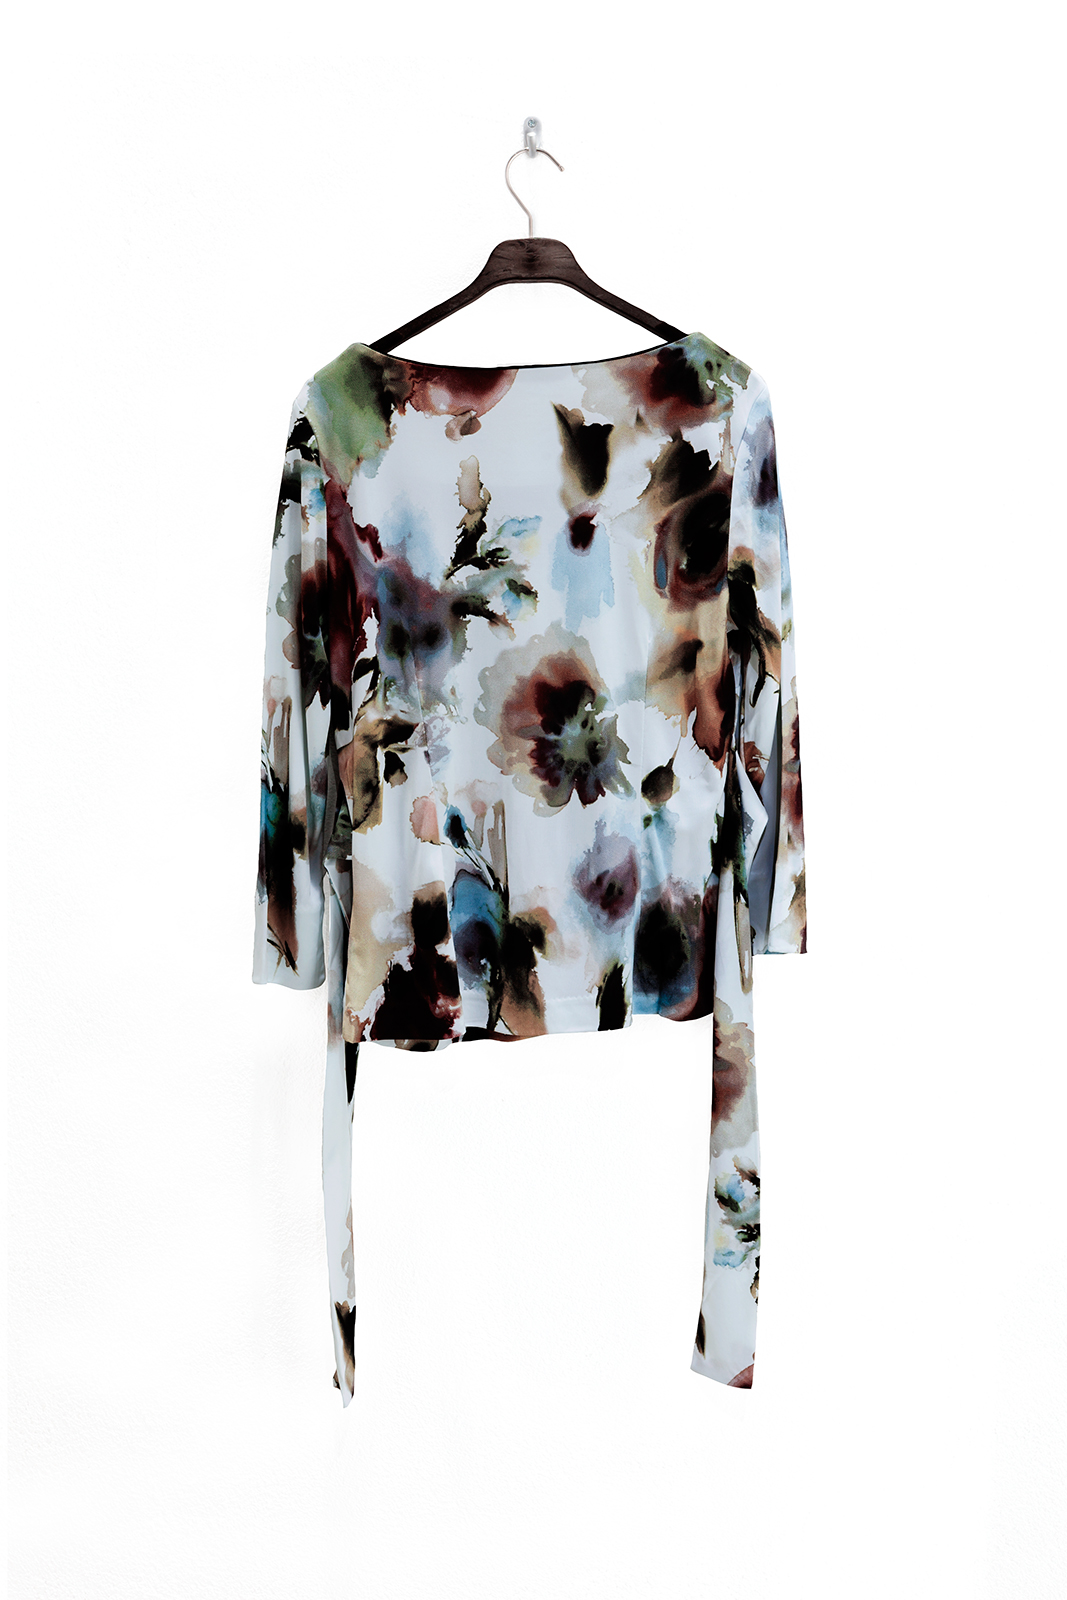 Wax blouse spatprint